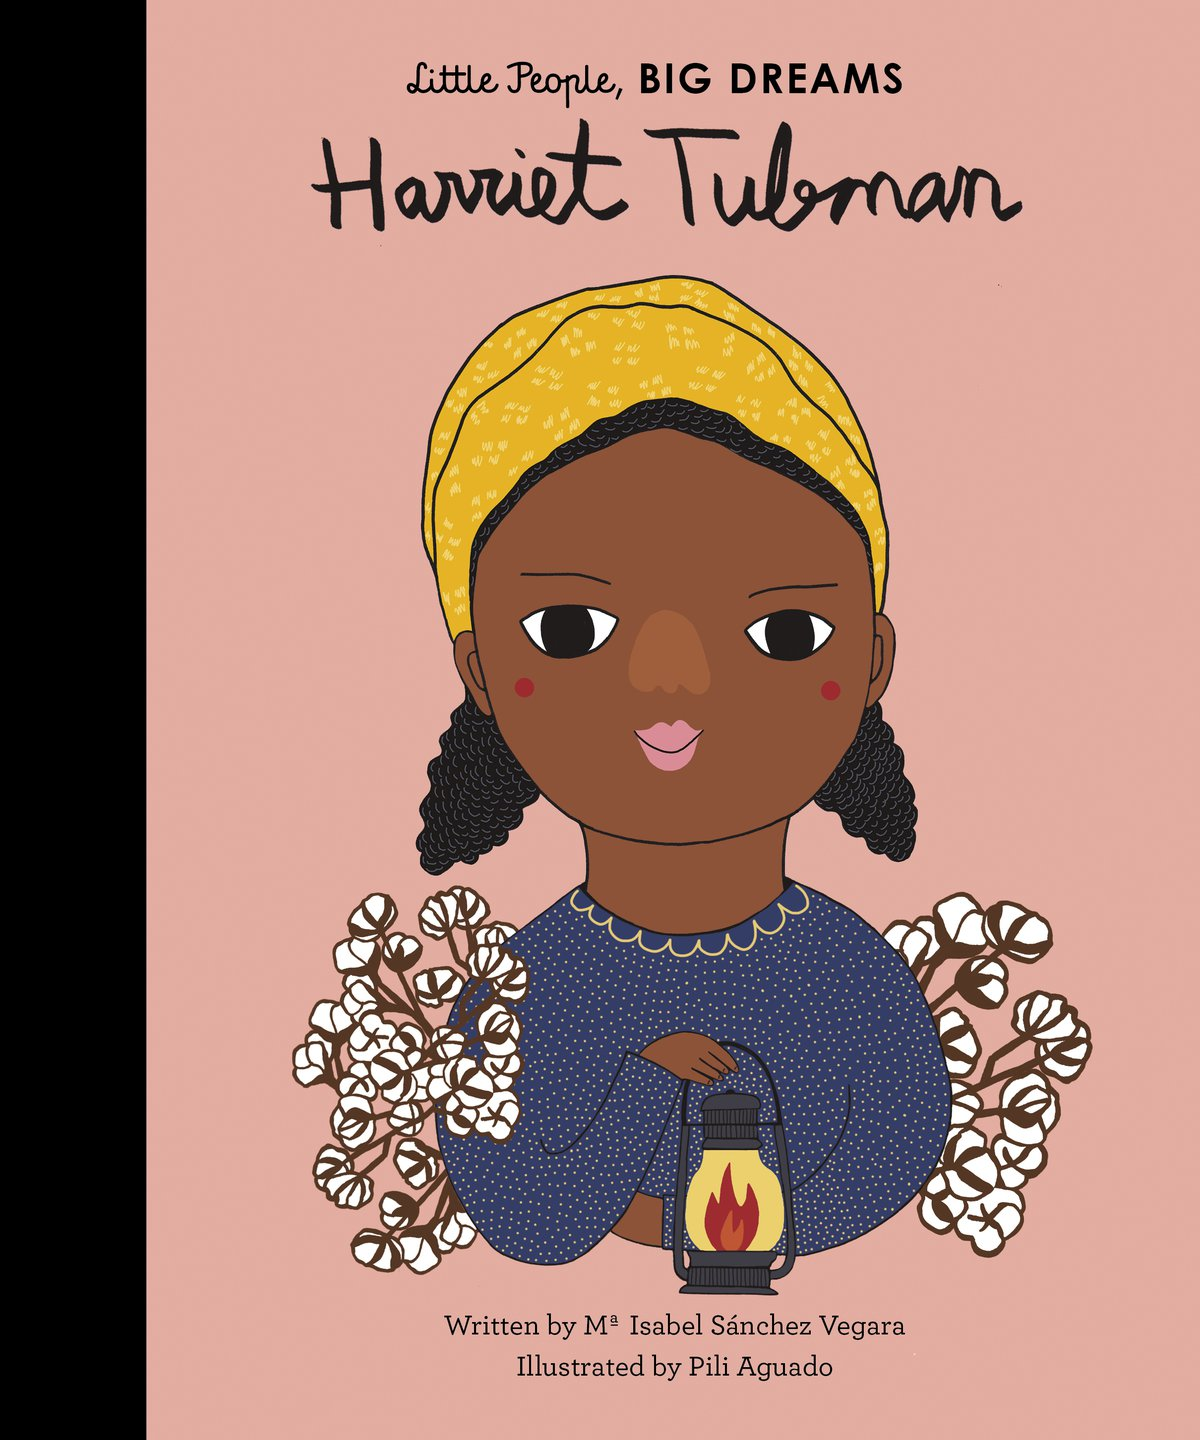 Book cover of Harriet Tubman, by Little People, Big Dreams